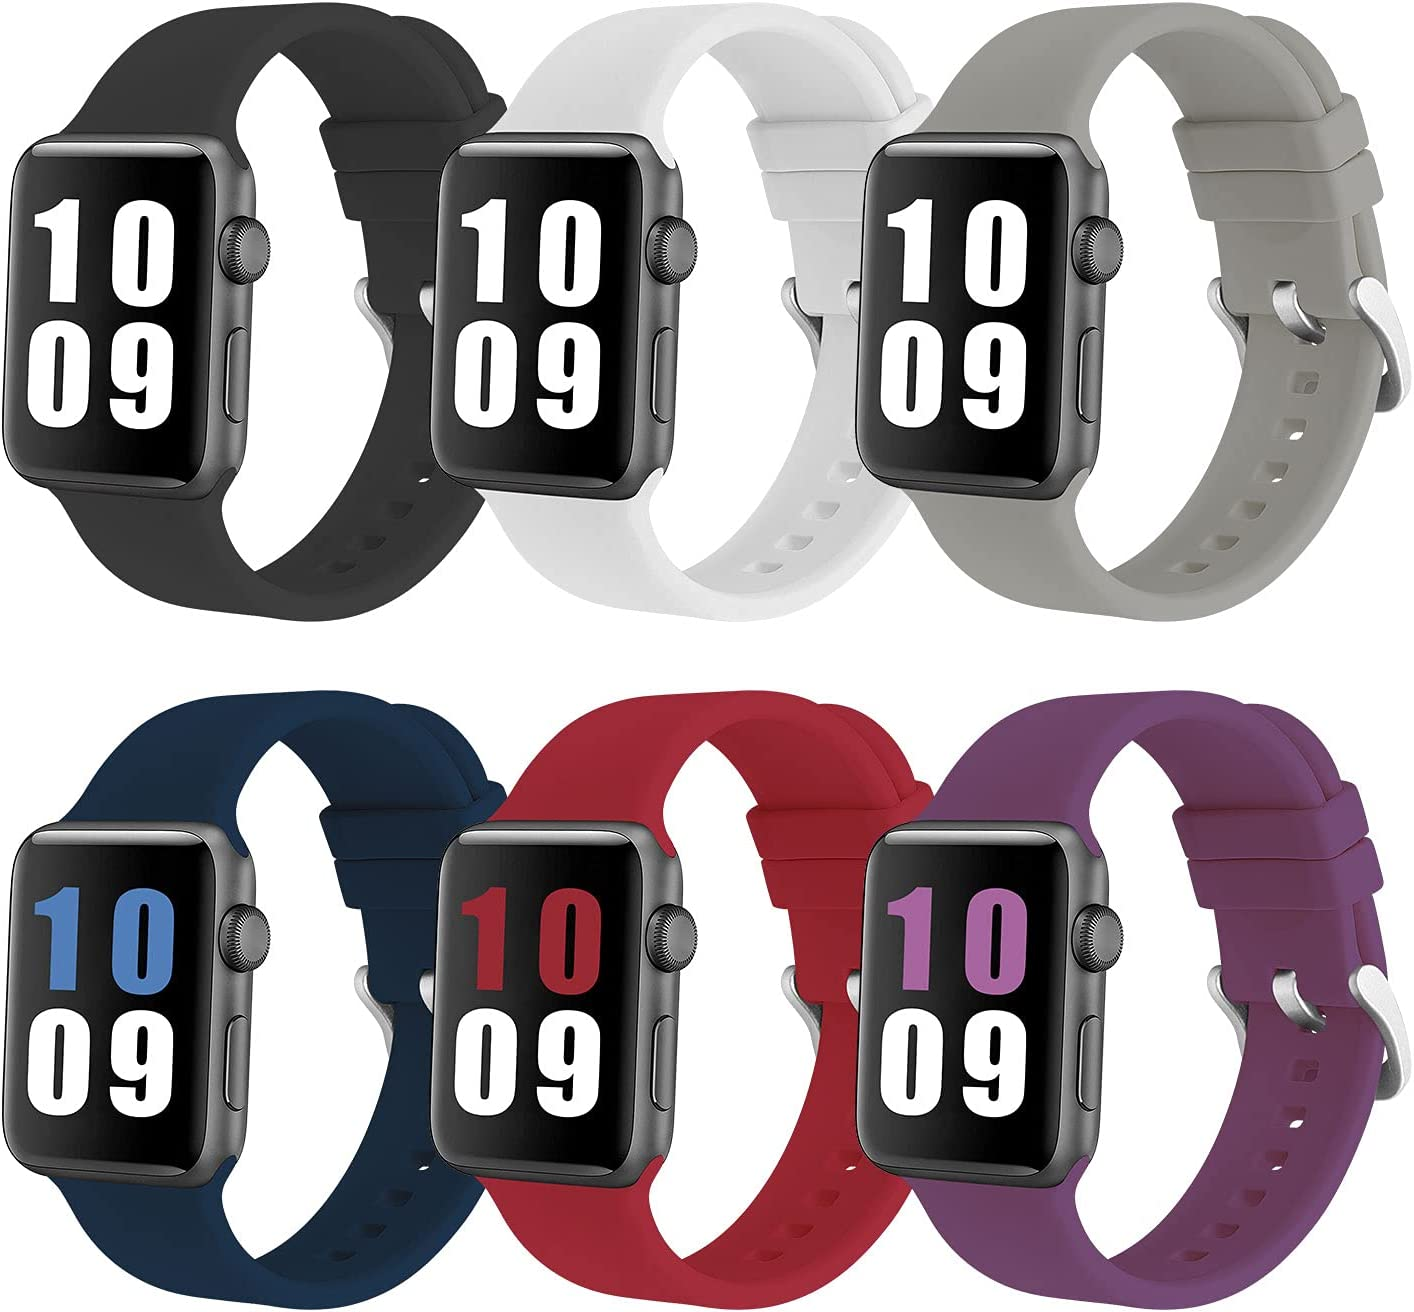 PROSRAT 6-Pack Sport Straps Compatible With Apple Watch Bands 38mm 40mm 42mm 44mm,Soft Silicone Replacement Bands for iWatch Series 6/SE/5/4/3/2/1 for Women Men (Black/Gray/White/Diamond Blue/Rose Red/Dark Purple, 42mm/44mm)